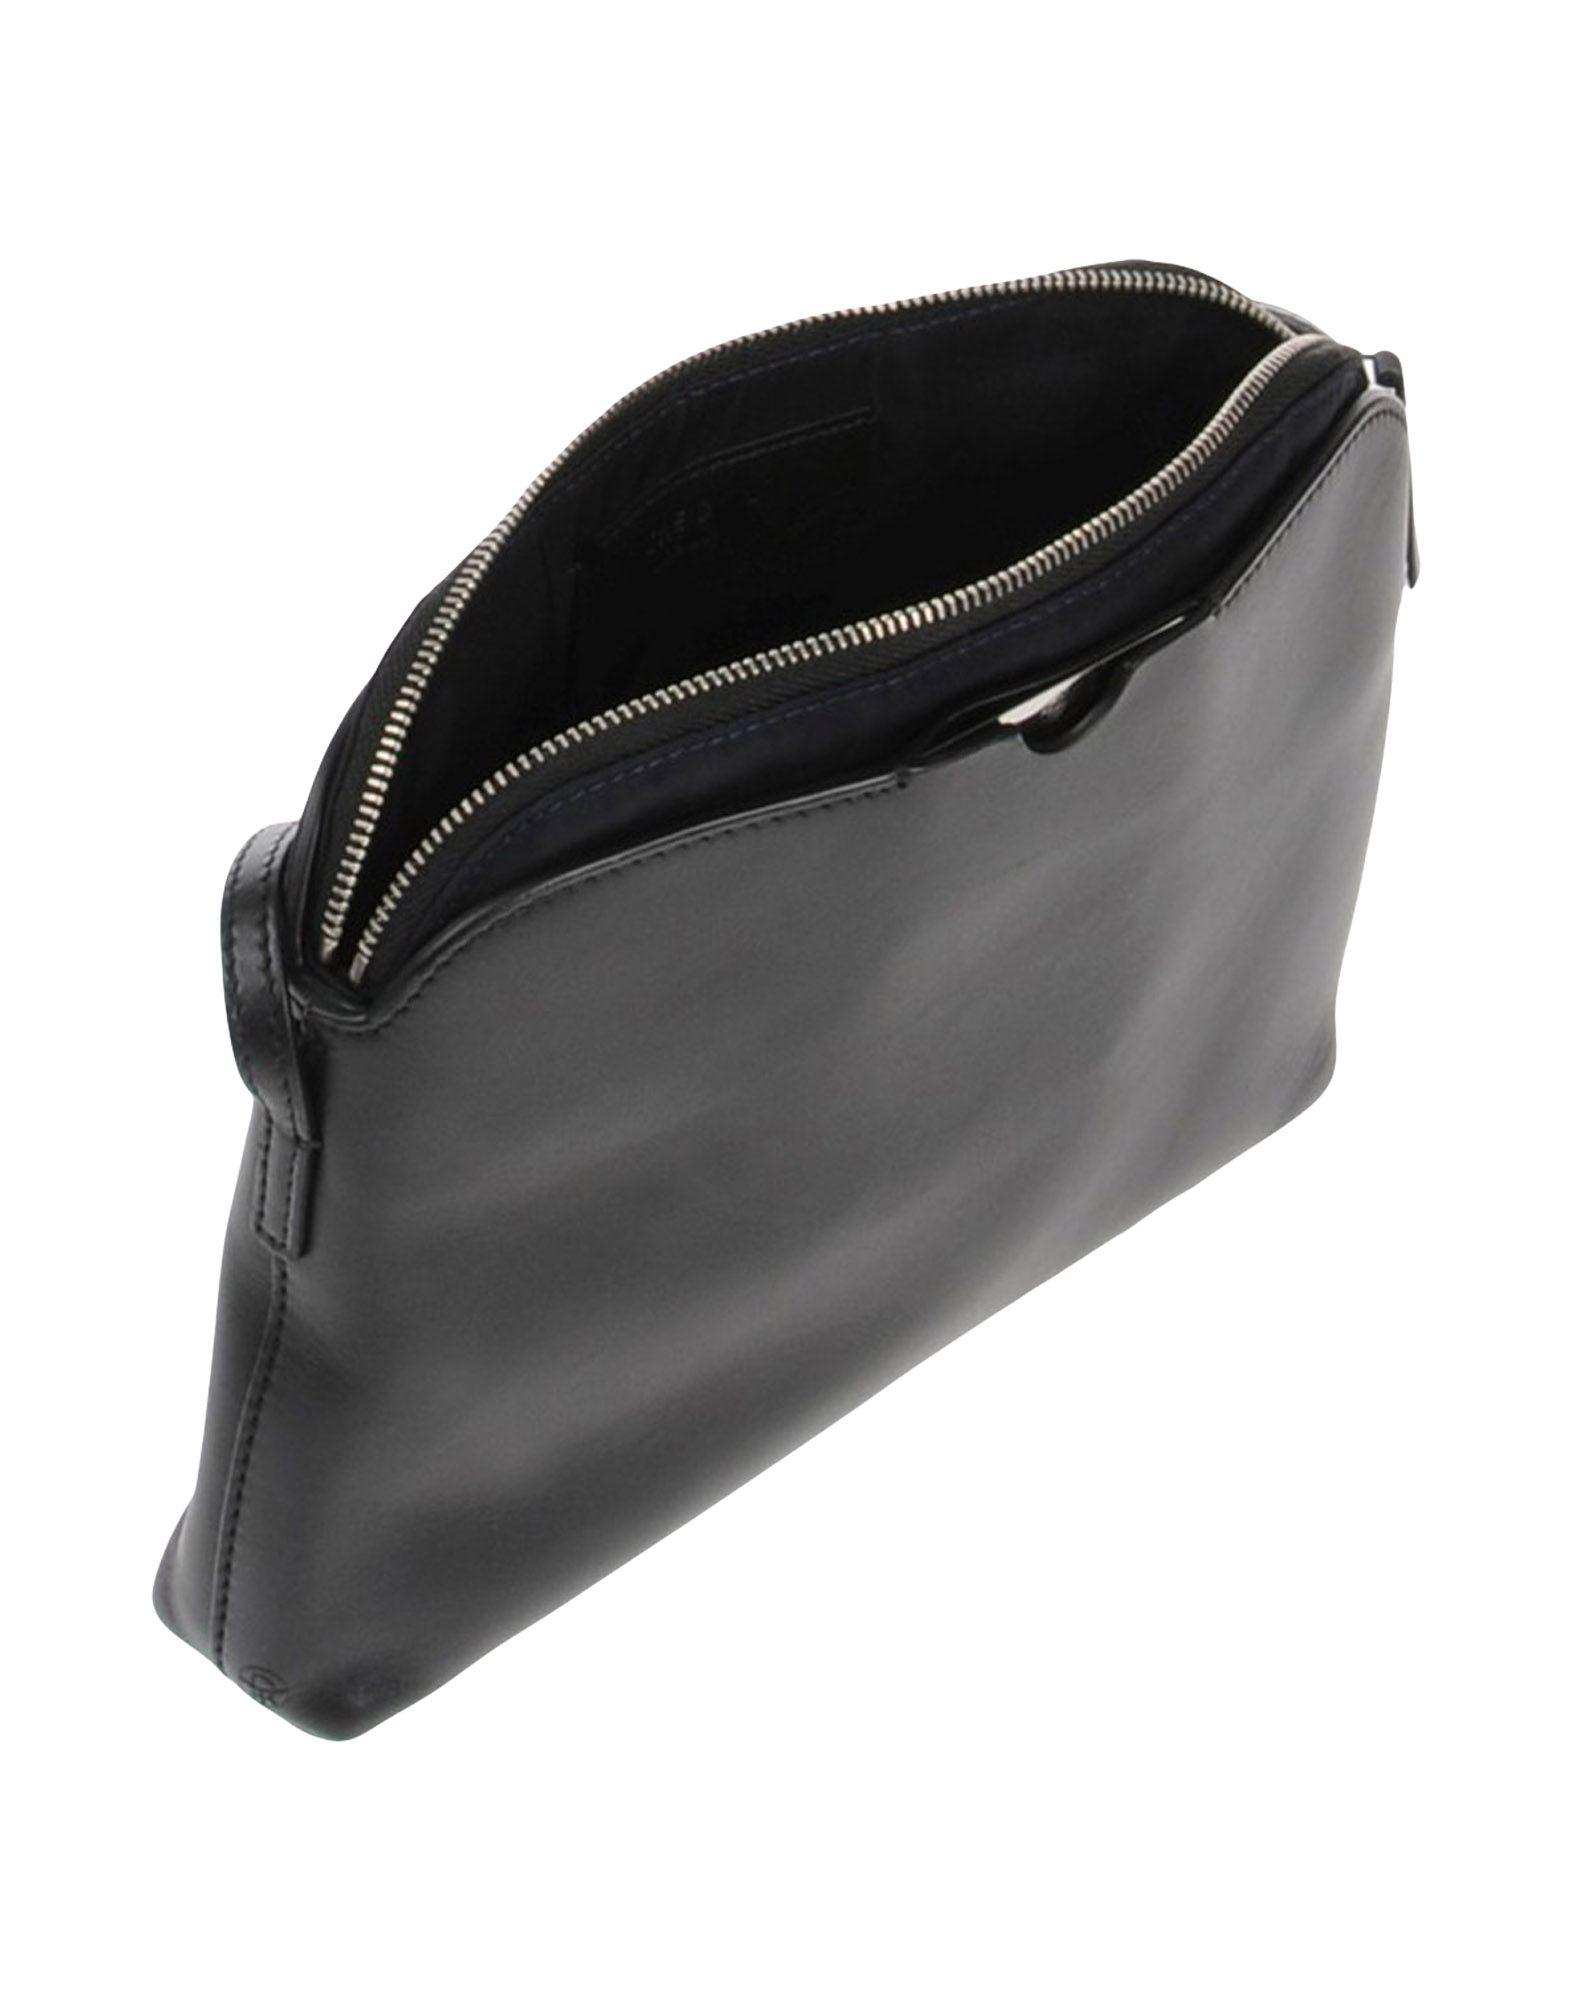 The Row Leather Cross-body Bag in Black